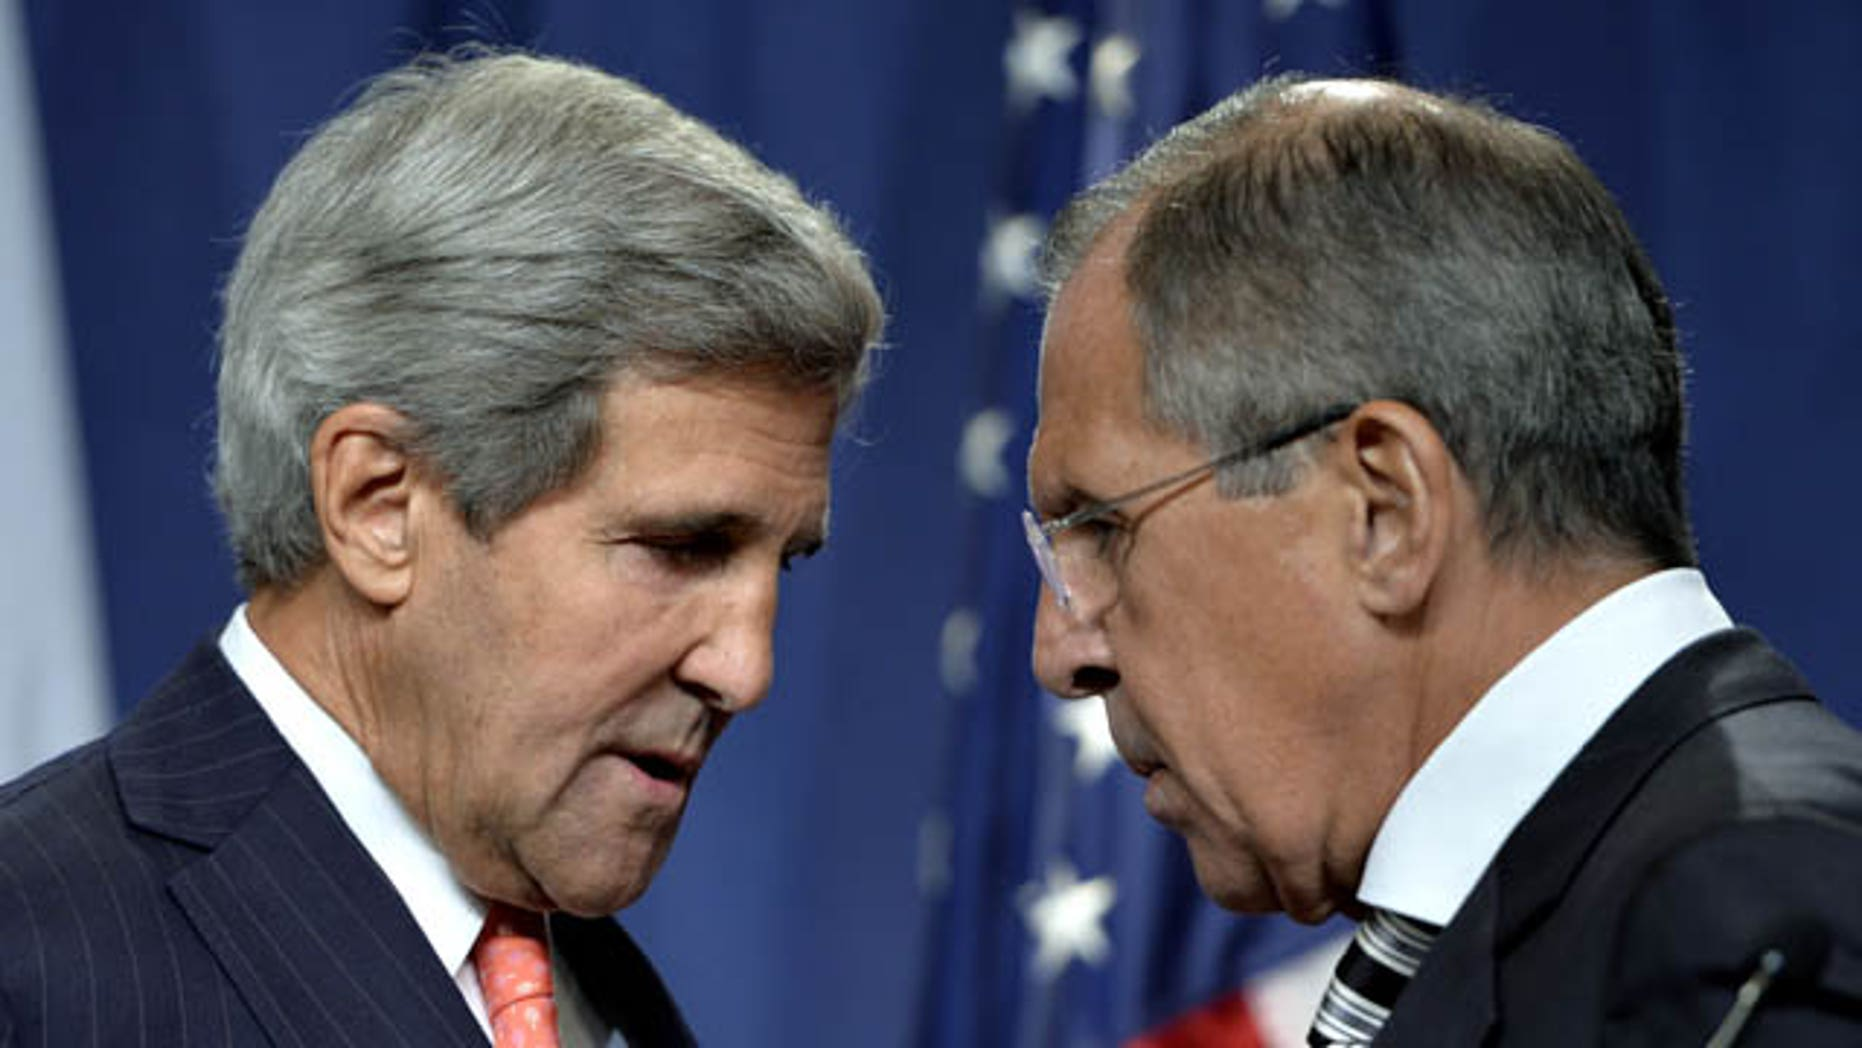 September 14, 2013: U.S. Secretary of State John Kerry, left, speaks with Russian Foreign Minister Sergei Lavrov, right, during a news conference in Geneva, Switzerland. (AP Photo/Keystone,Martial Trezzini)